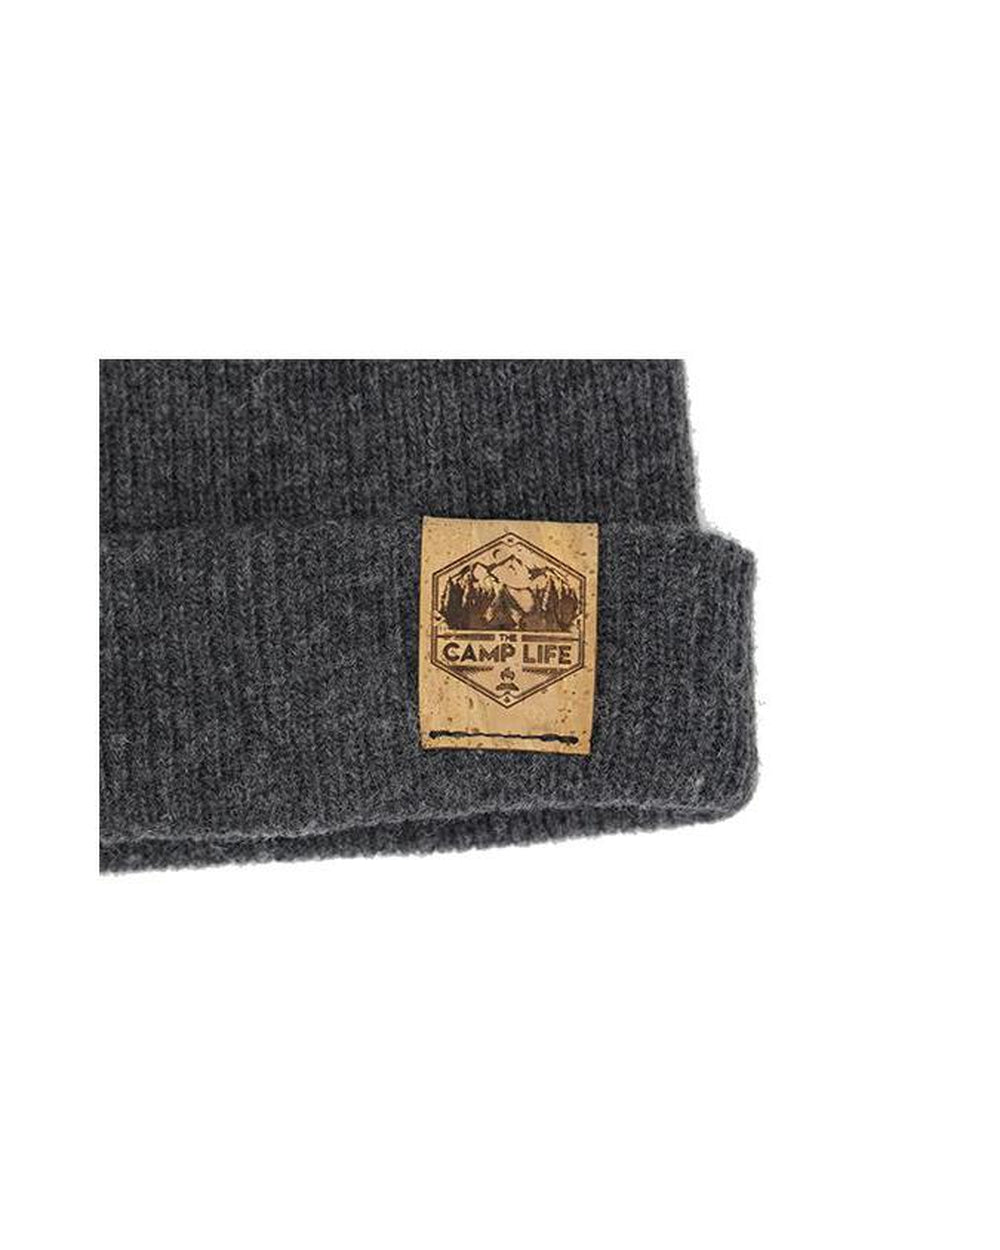 The Camp Life 100% Merino Wool + Cork Beanie